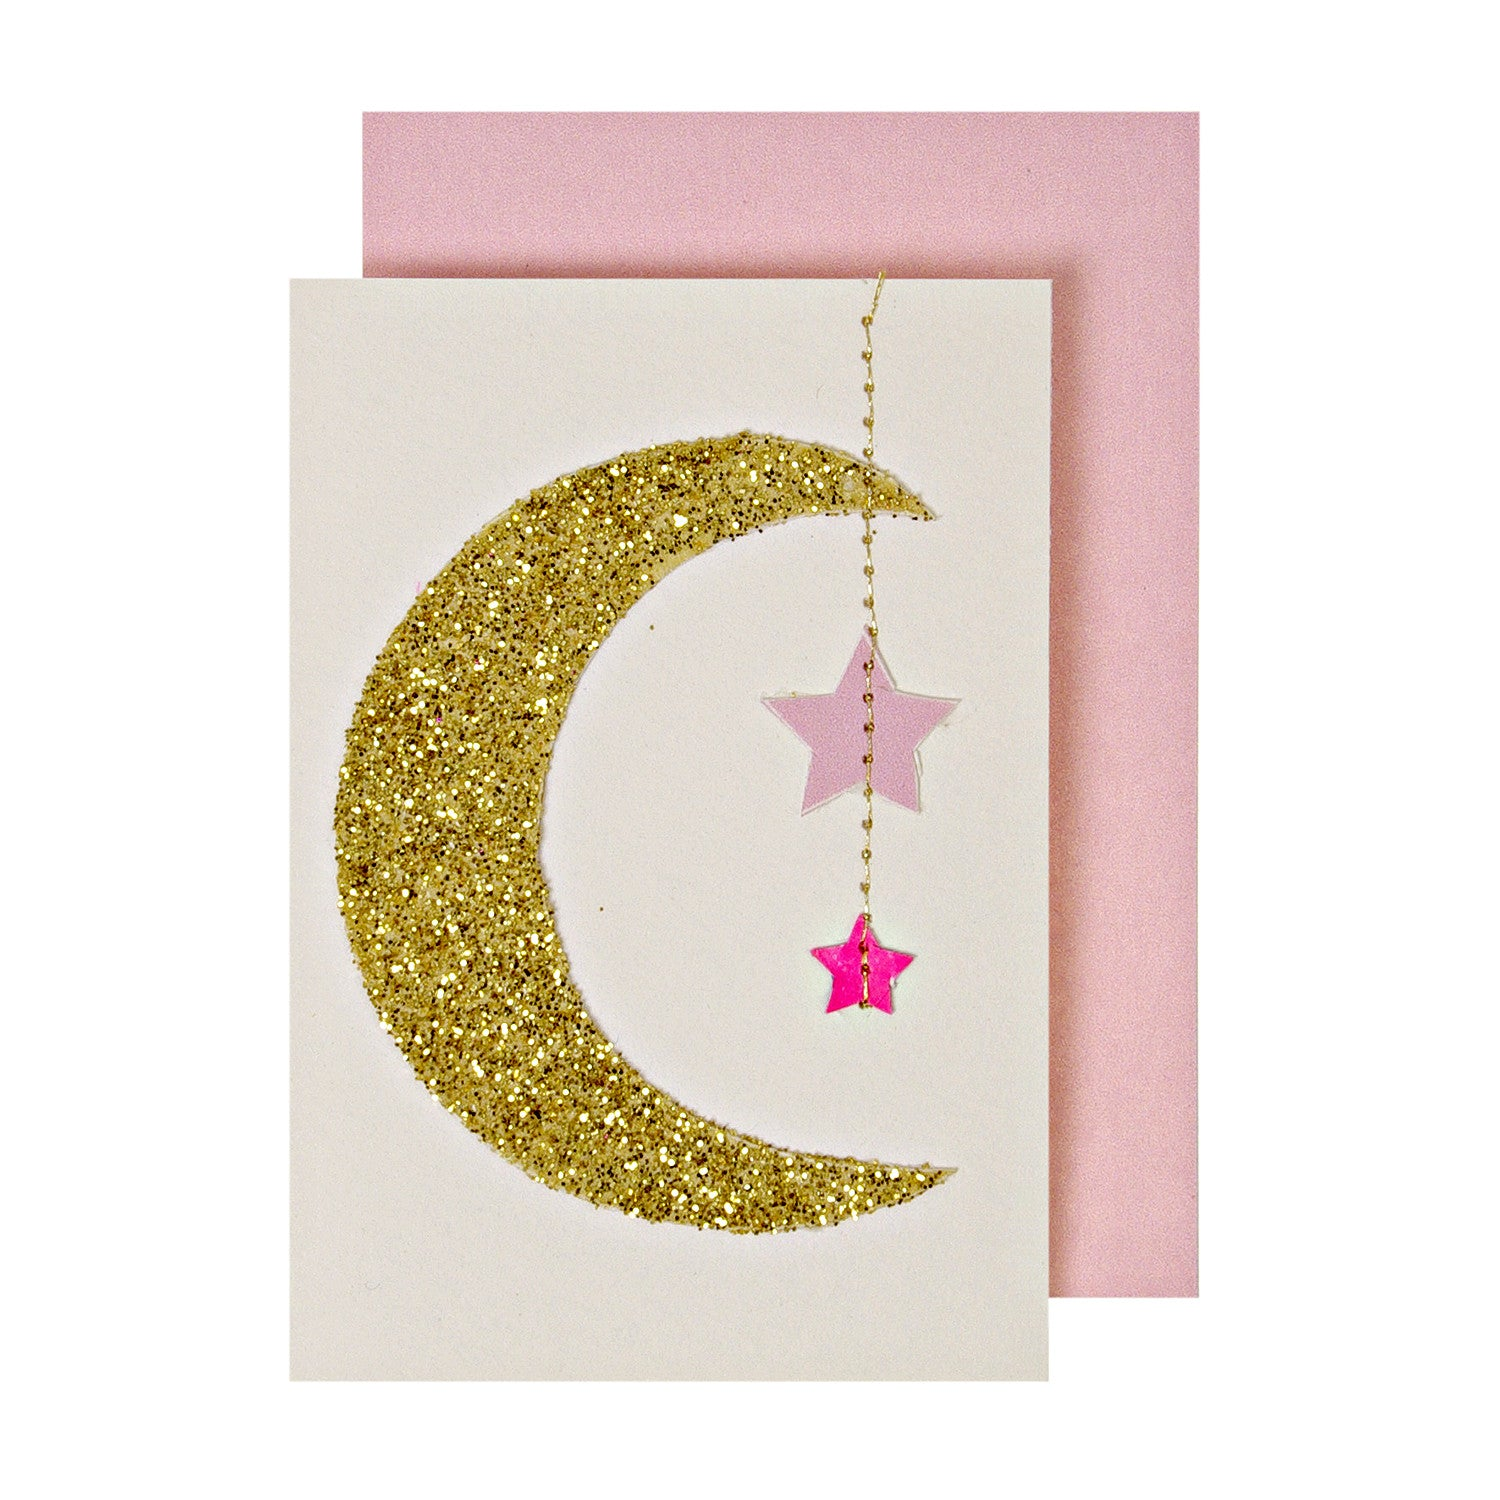 Hanging Moon Mobile - Newborn Card by Meri Meri - Little Citizens Boutique  - 1